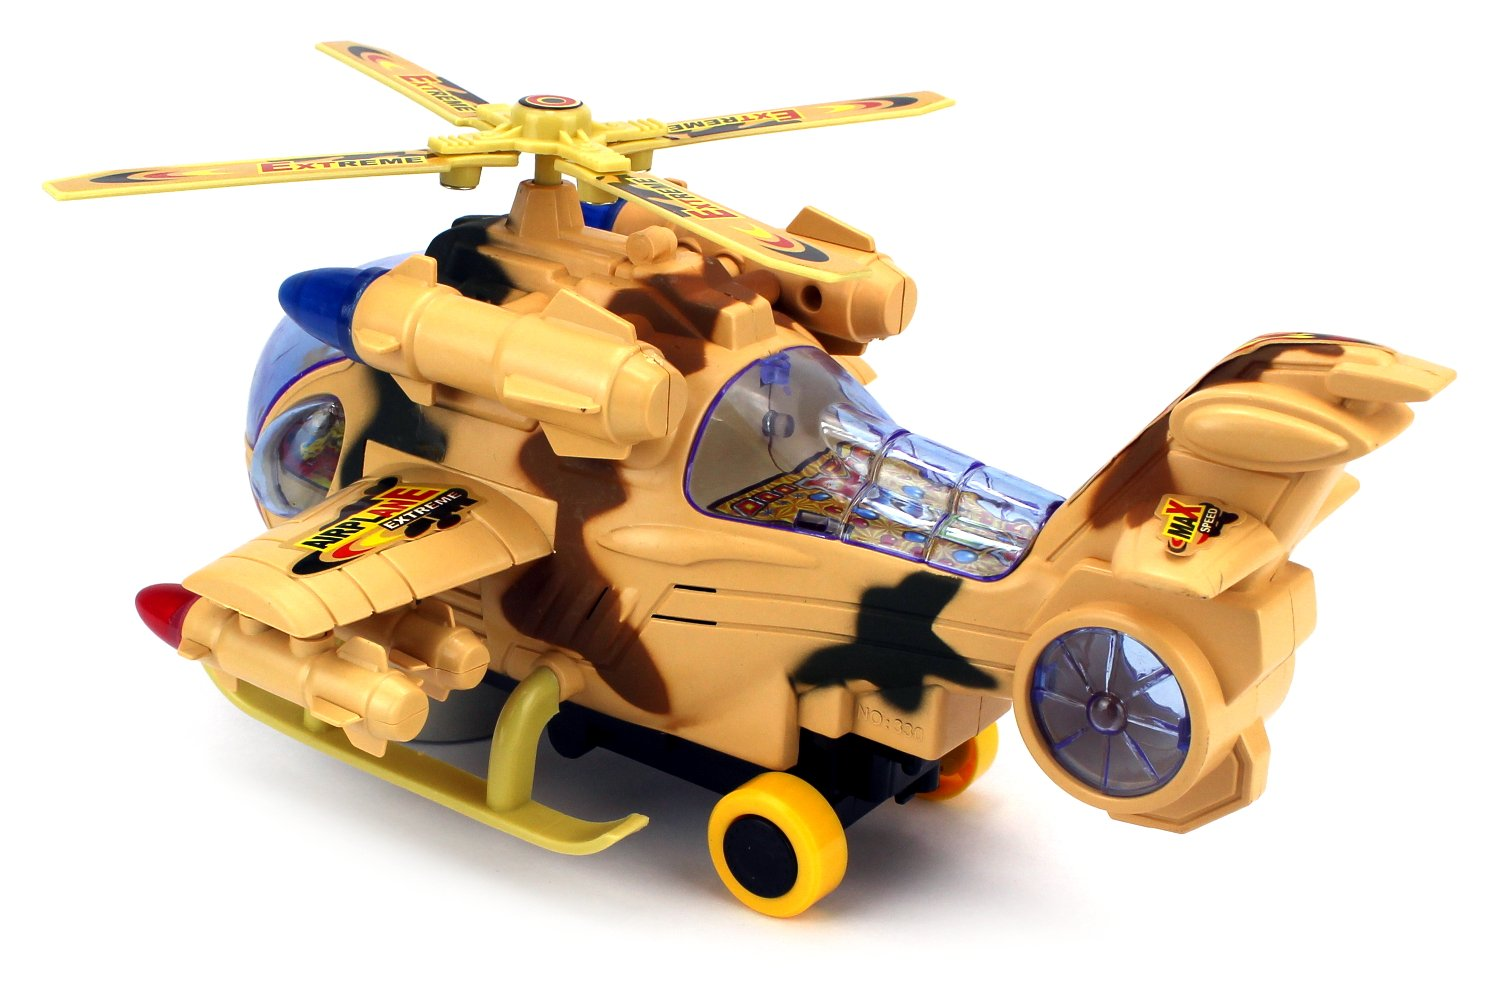 Amazon.com: Fighter Copter Battery Operated Bump and Go Toy Helicopter w/ Flashing Lights, Sounds (Colors May Vary): Toys & Games